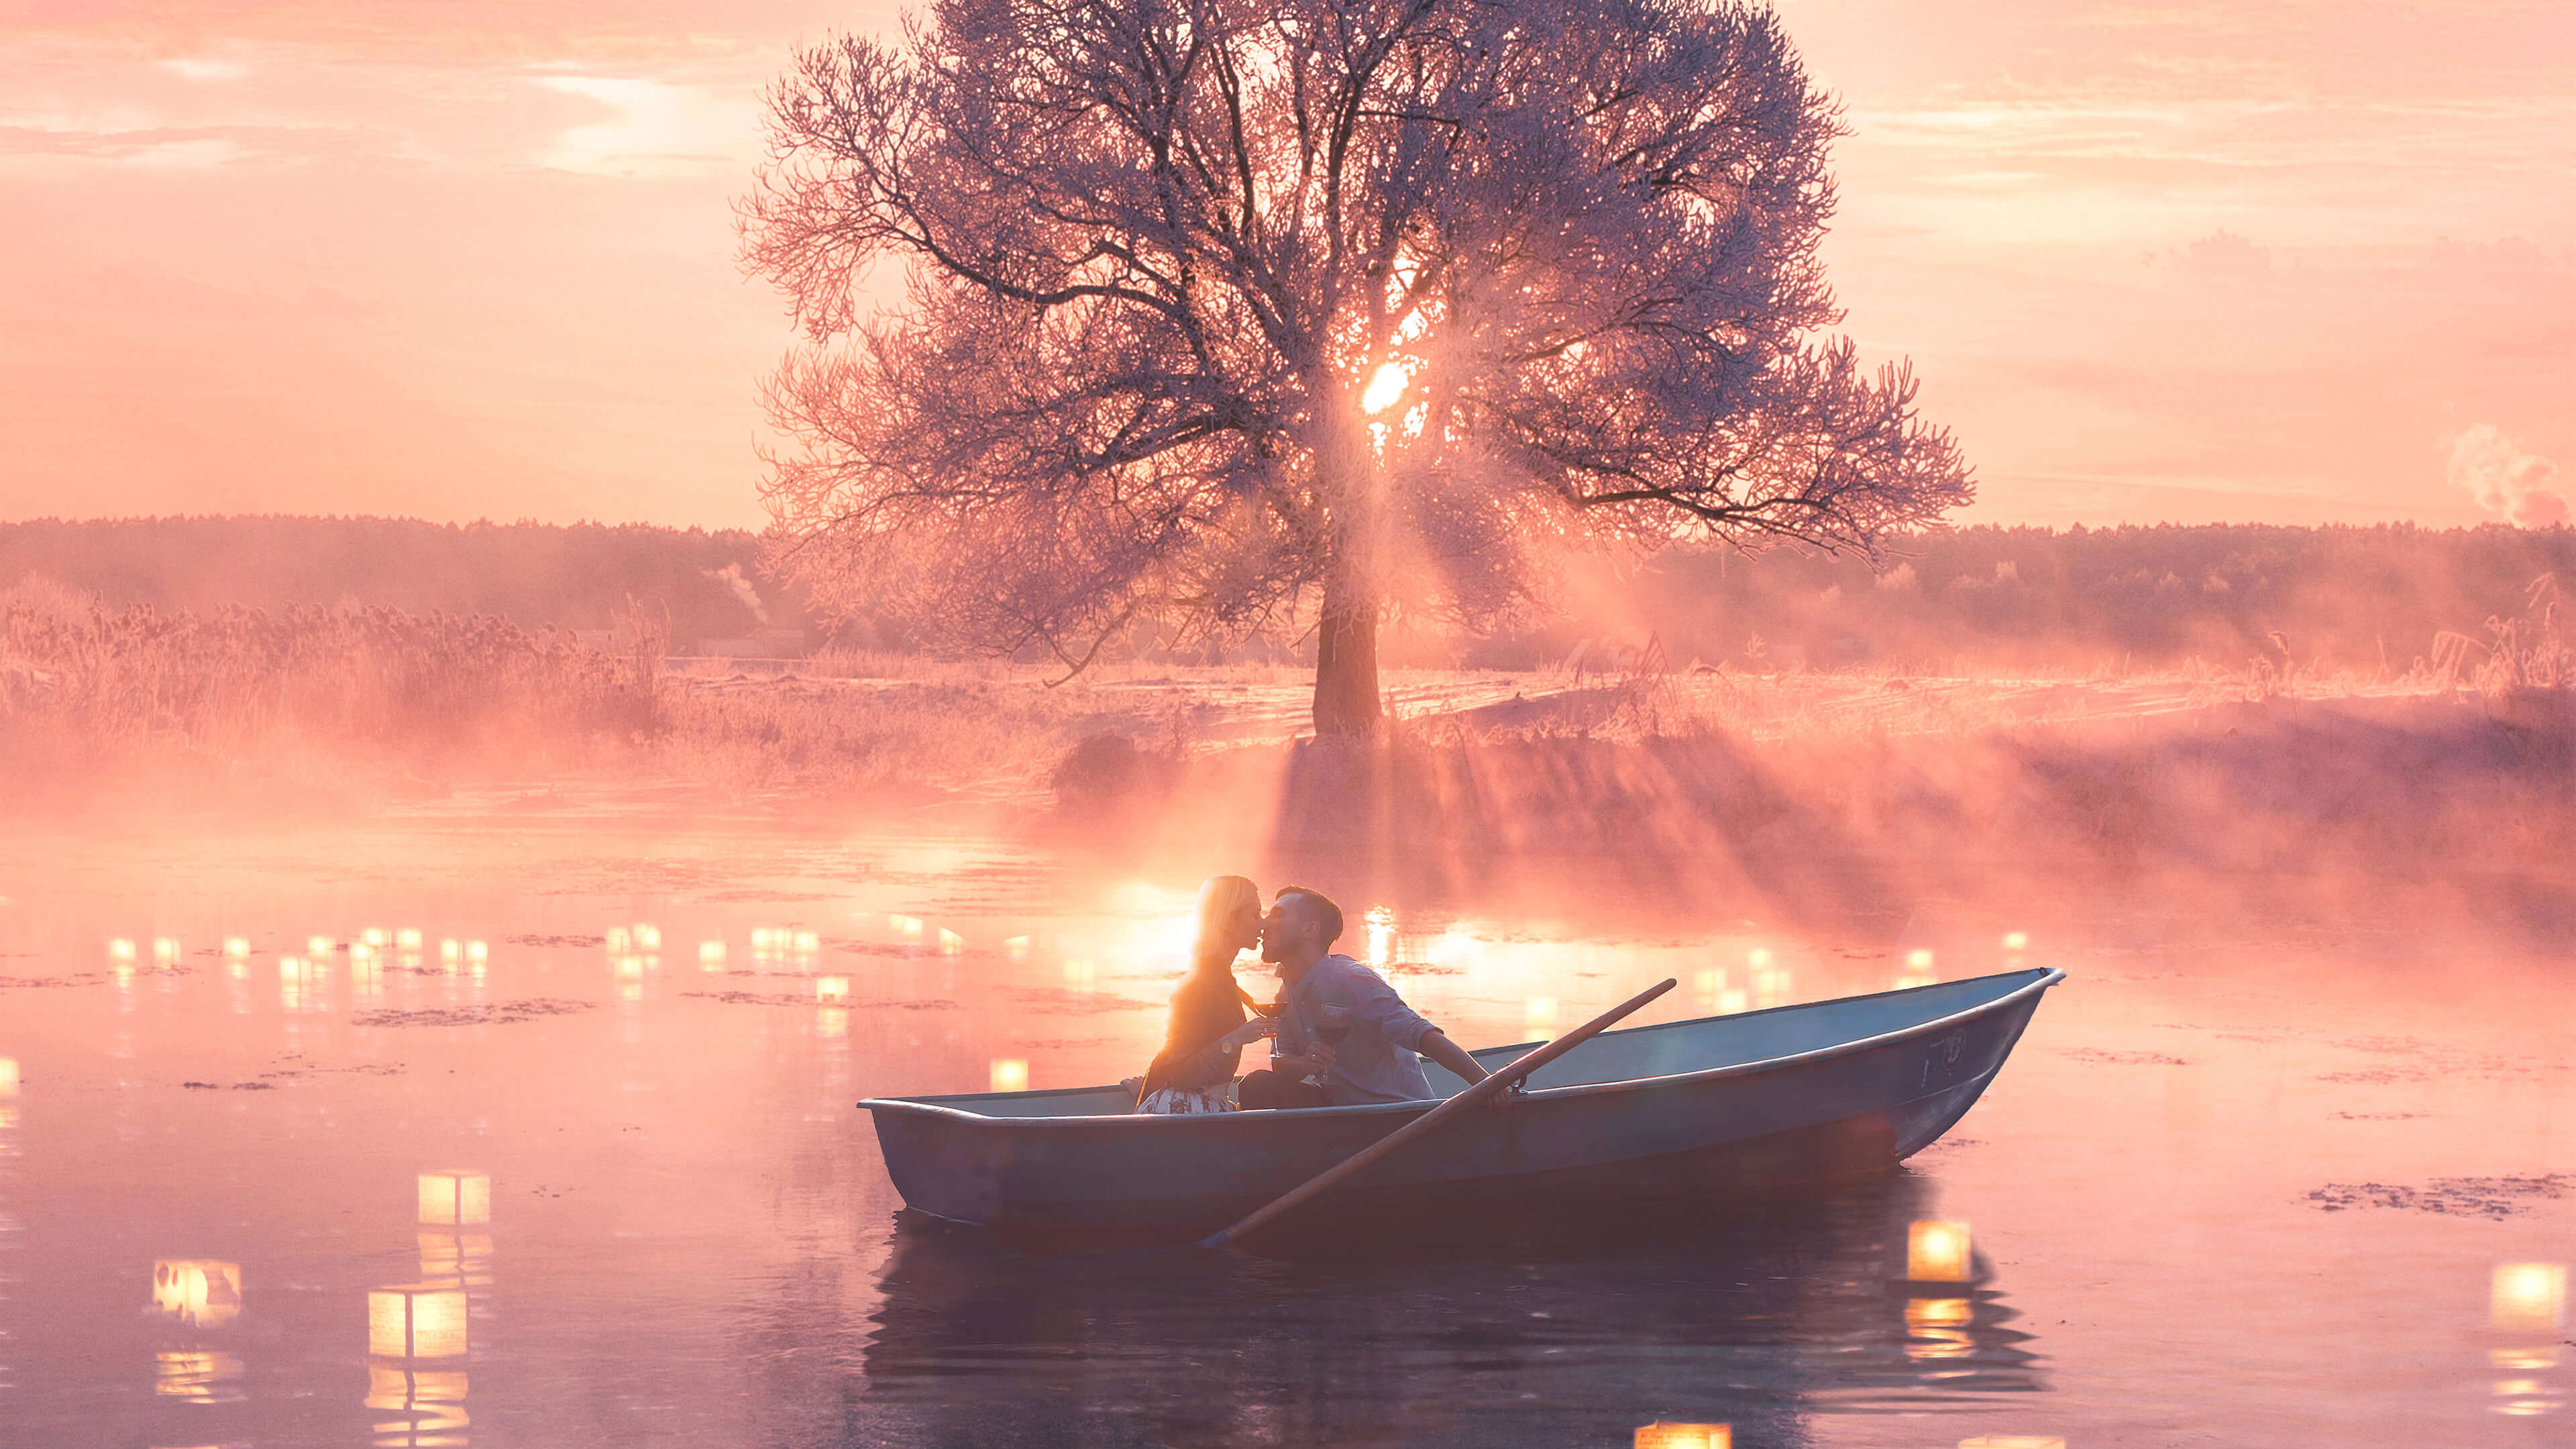 Cute Anime Couple Wallpaper Backgrounds Romantic Couple Boat Hd Love 4k Wallpapers Images